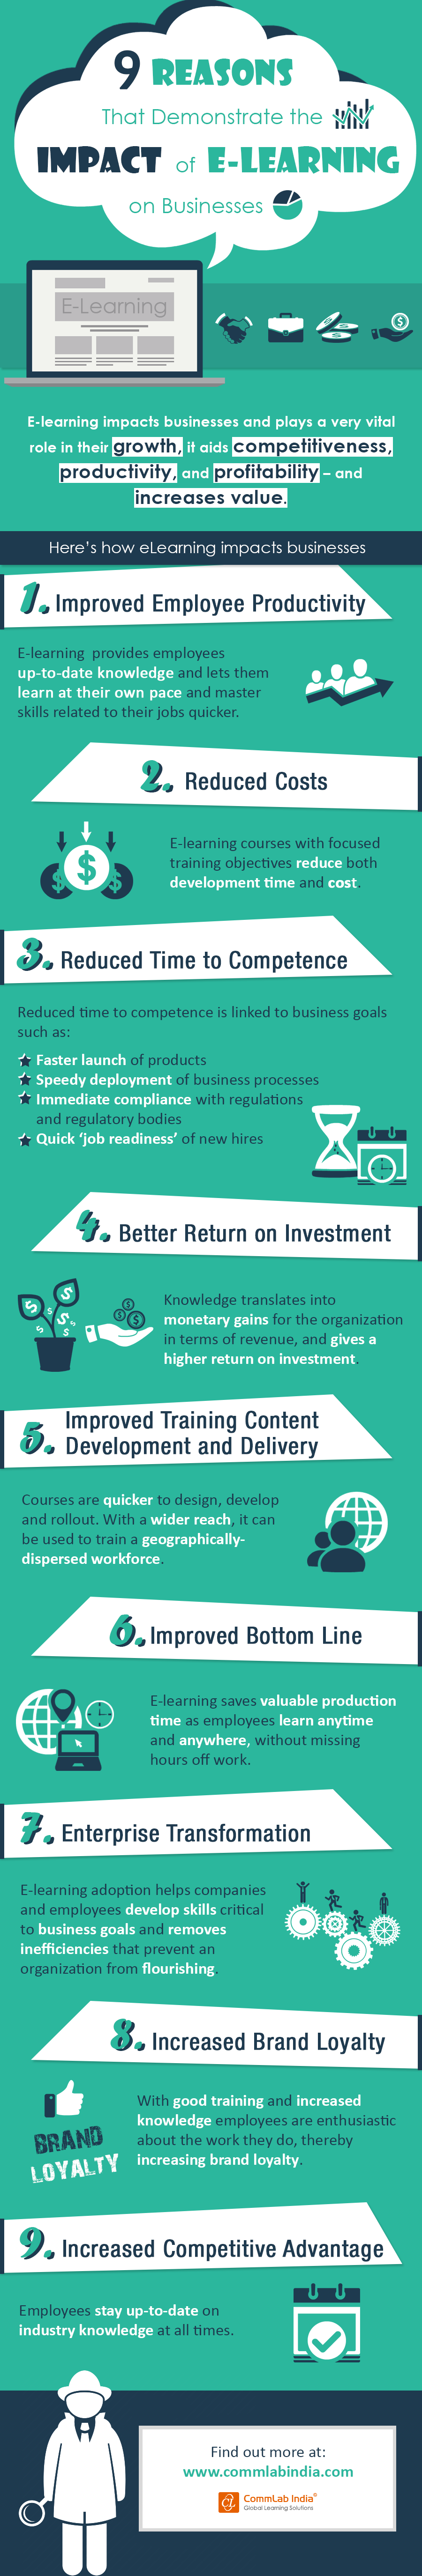 9 Reasons That Demonstrate the Impact of E-learning on Businesses [Infographic]